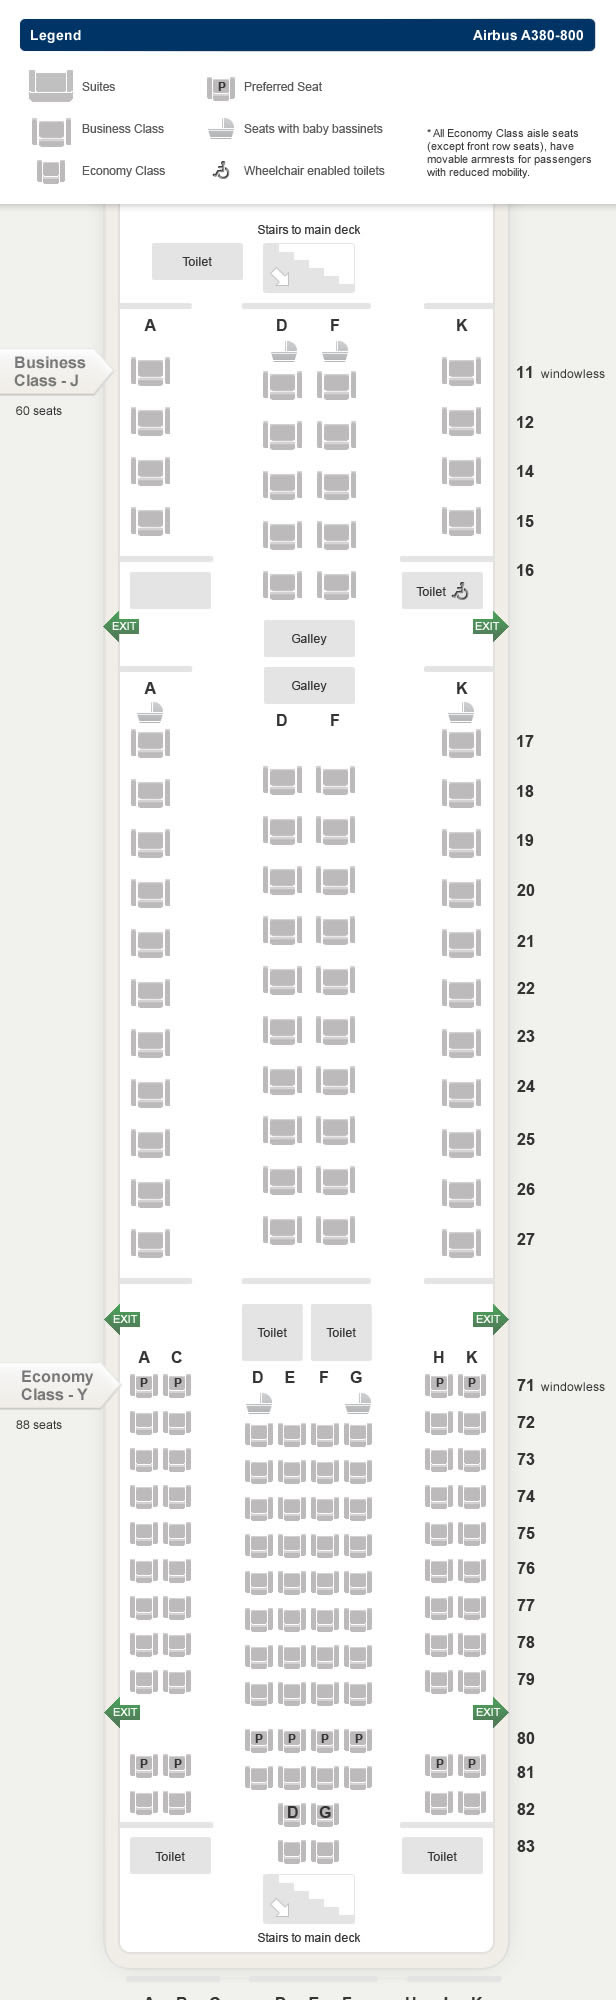 SINGAPORE AIR AIRLINES AIRBUS A380-800 AIRCRAFT SEATING CHART